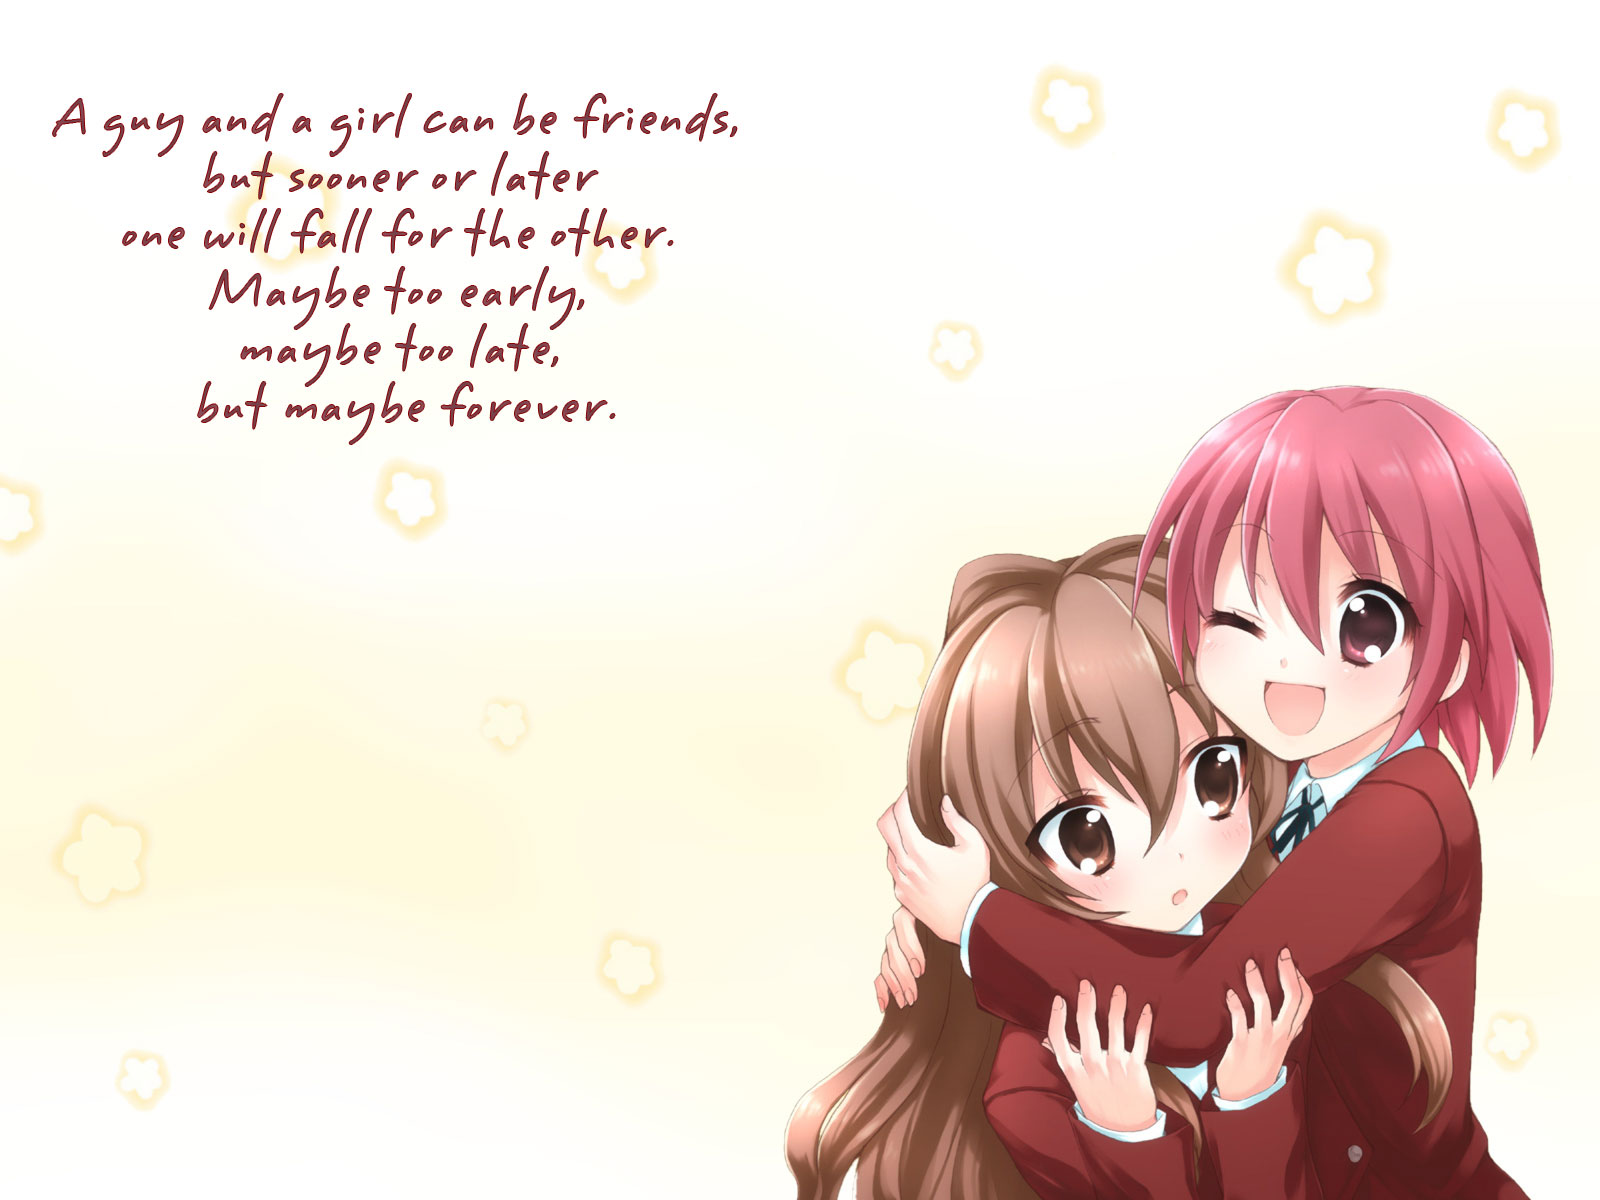 Anime Quotes About Friendship Friendship Quotes From Anime Friendship Pictures Archives Cool